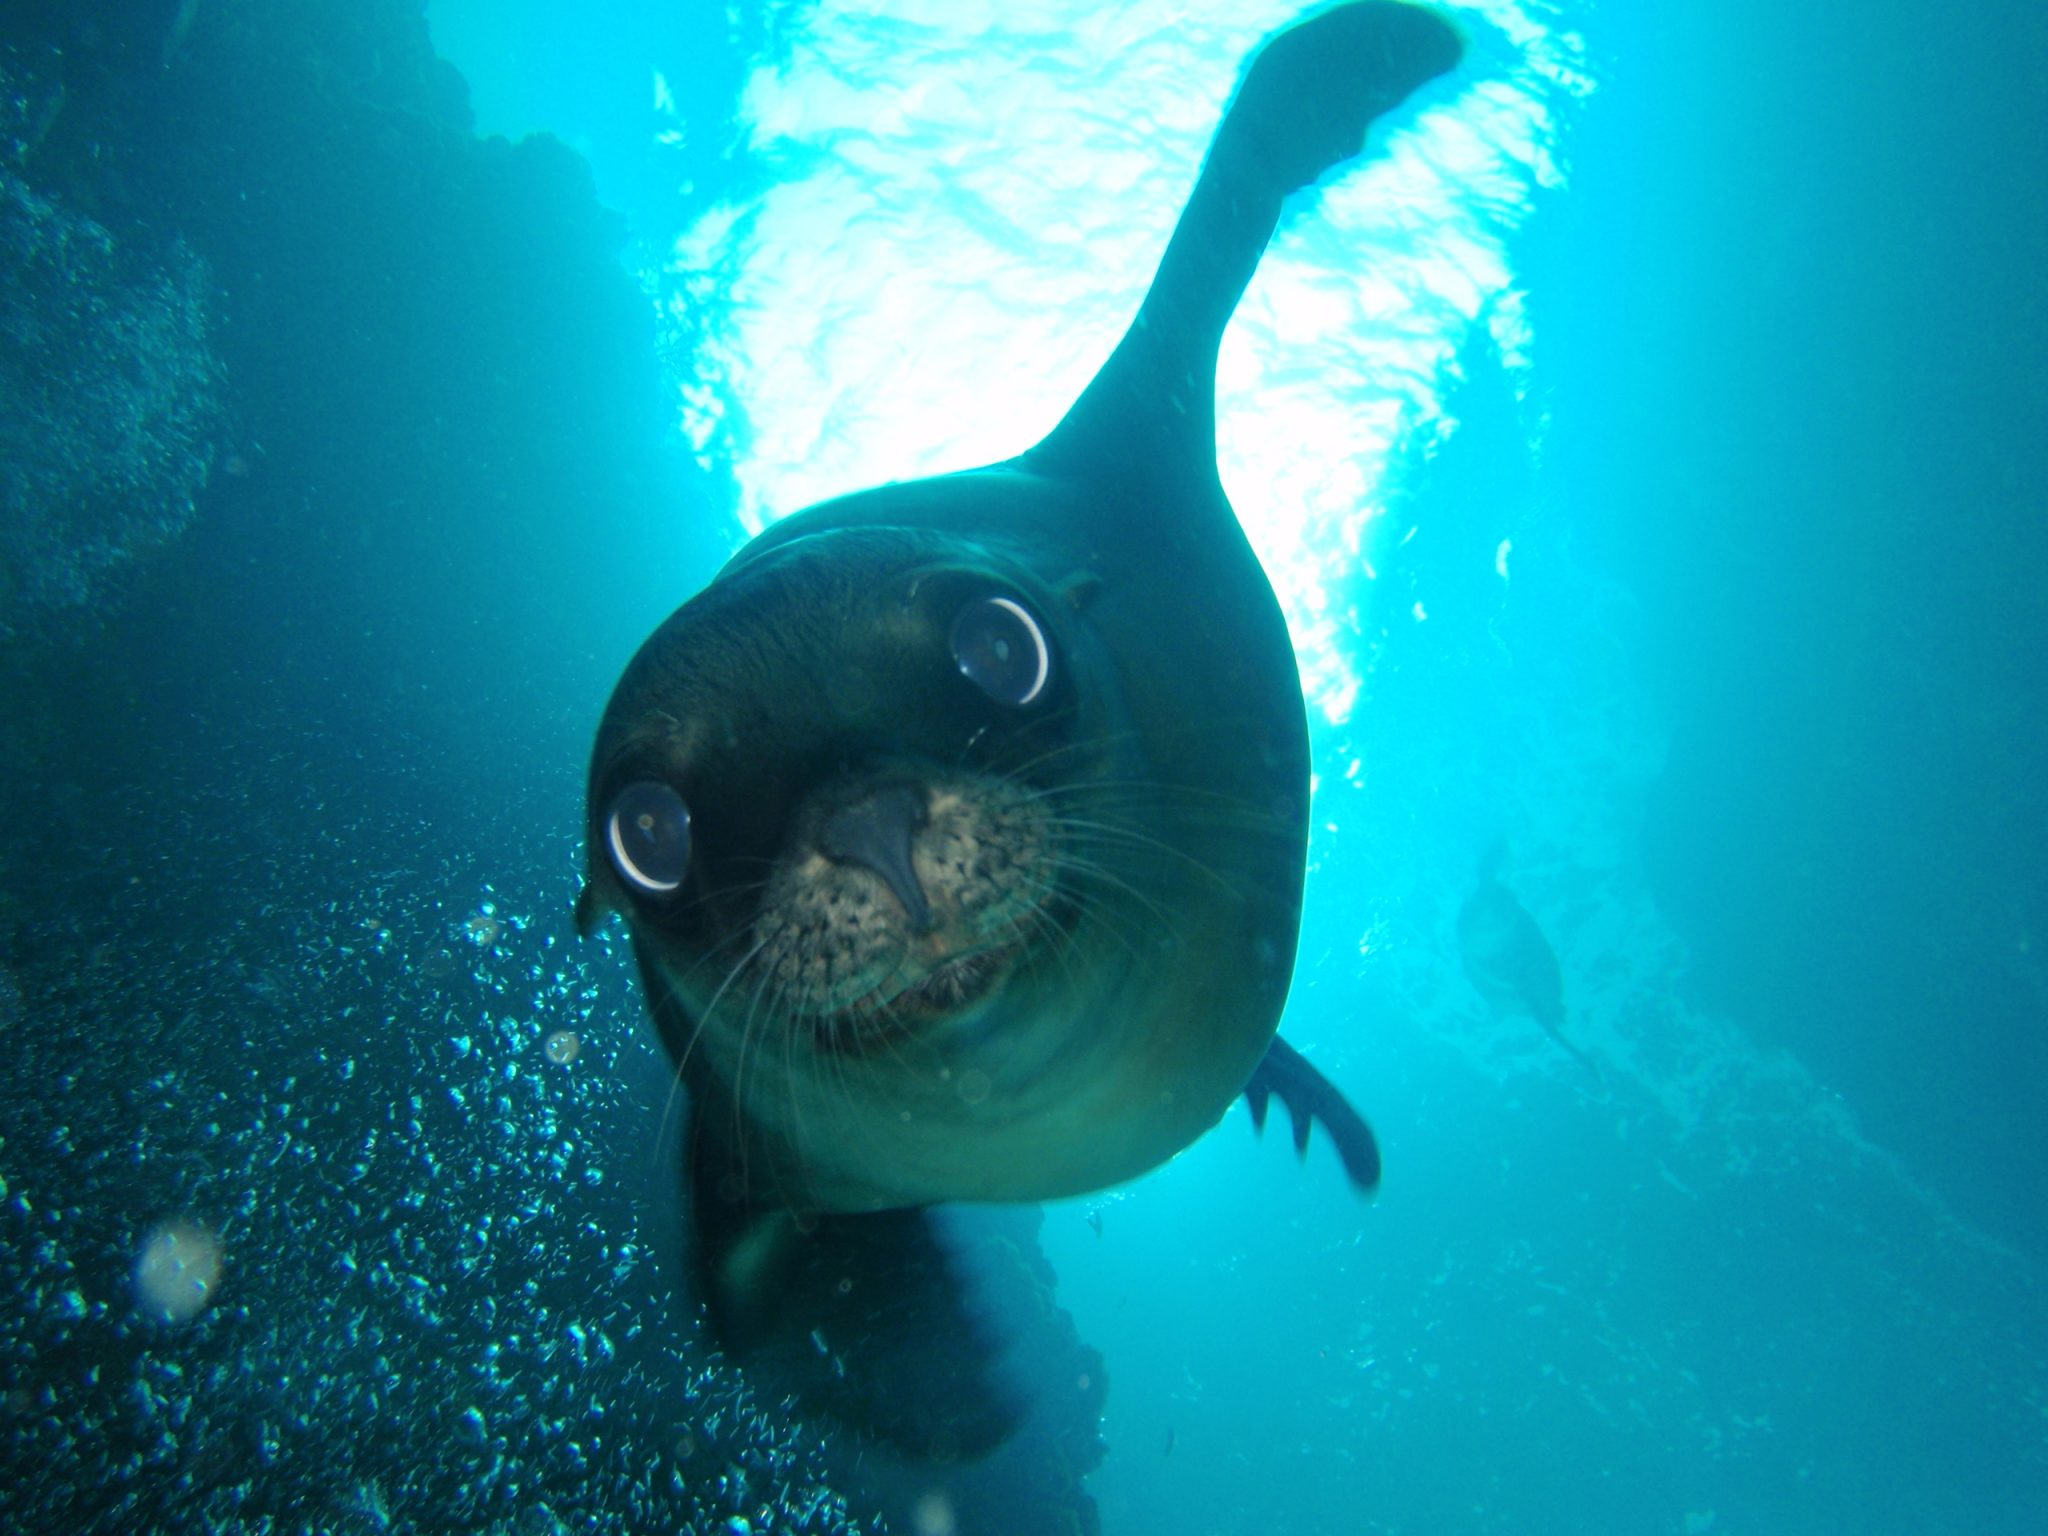 Swimming with Sea Lions is one of the highlights of visiting La Paz Baja California Sur that is described in this complete visitor's guide to La Paz Baja California Sur